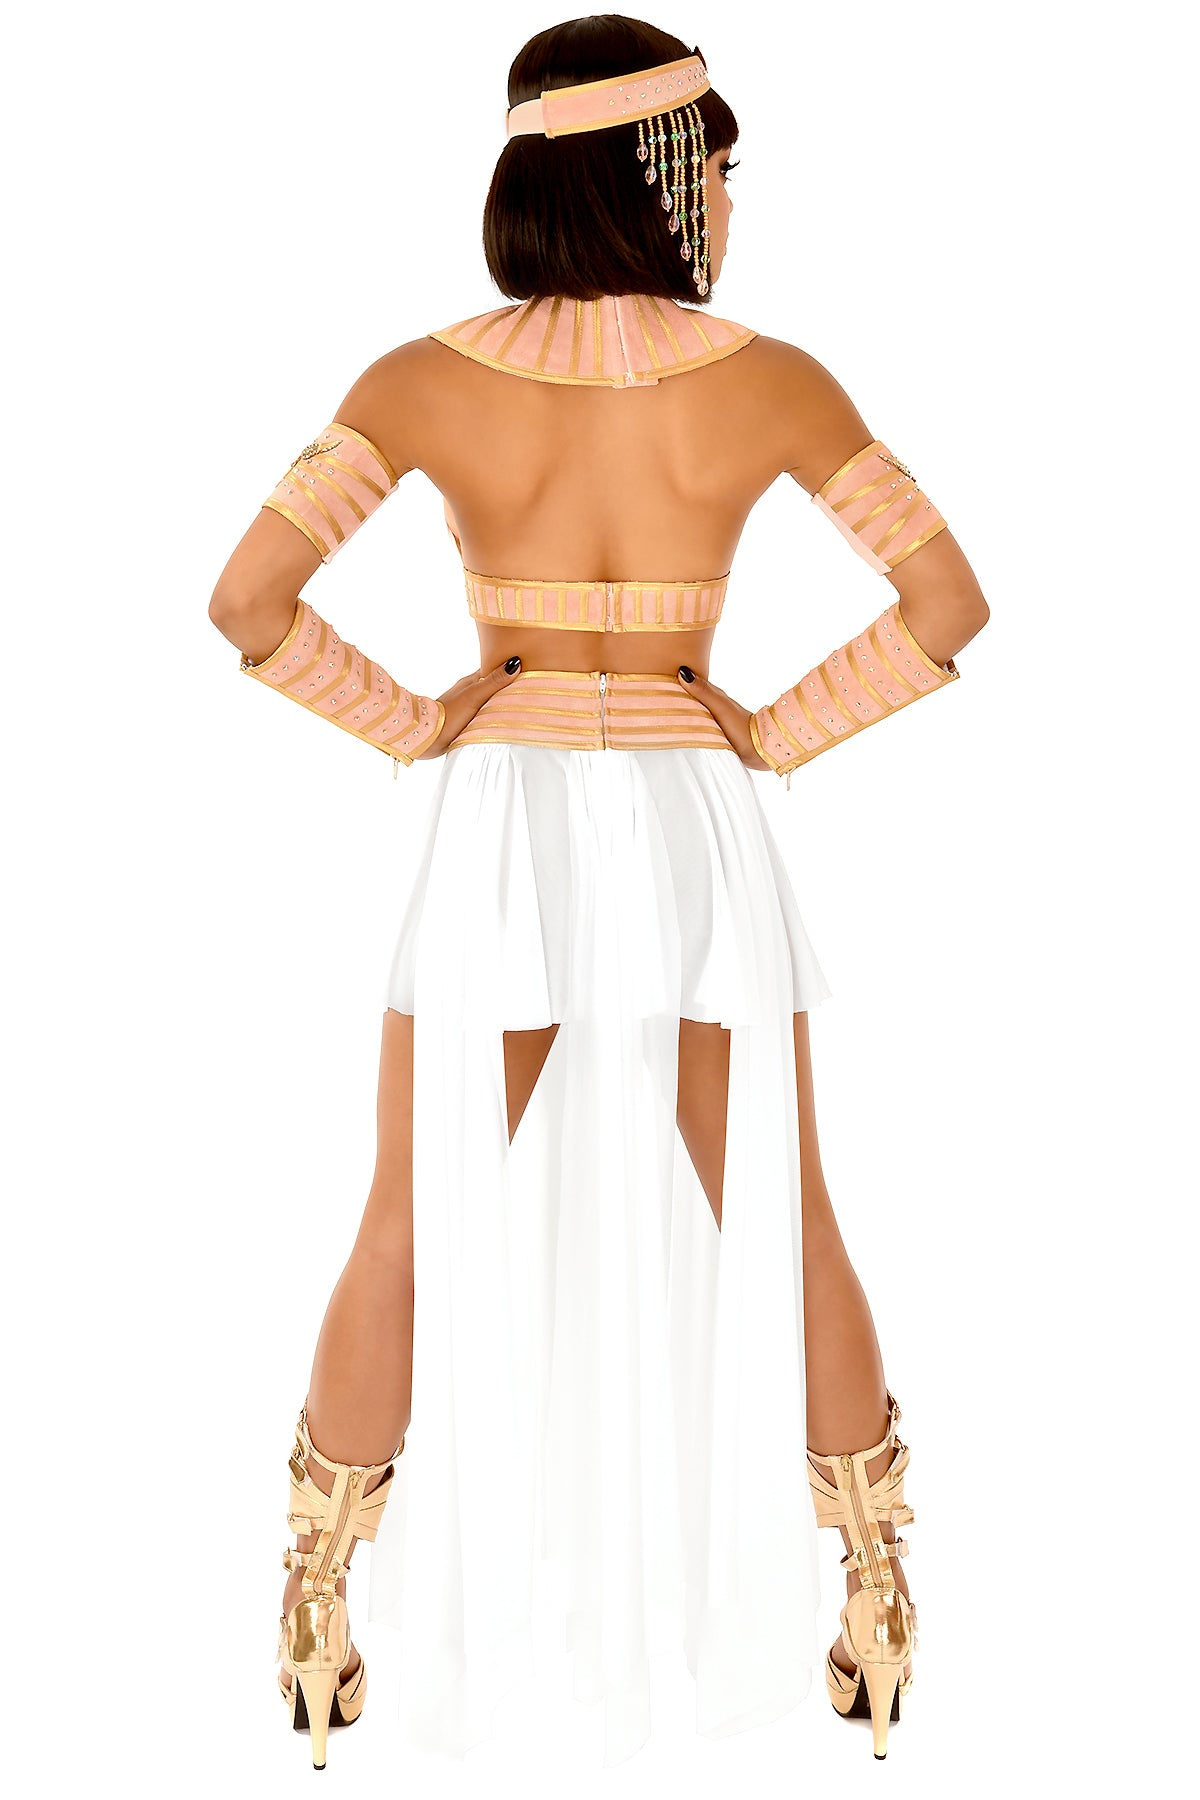 Nefertiri High-Waisted Skirt